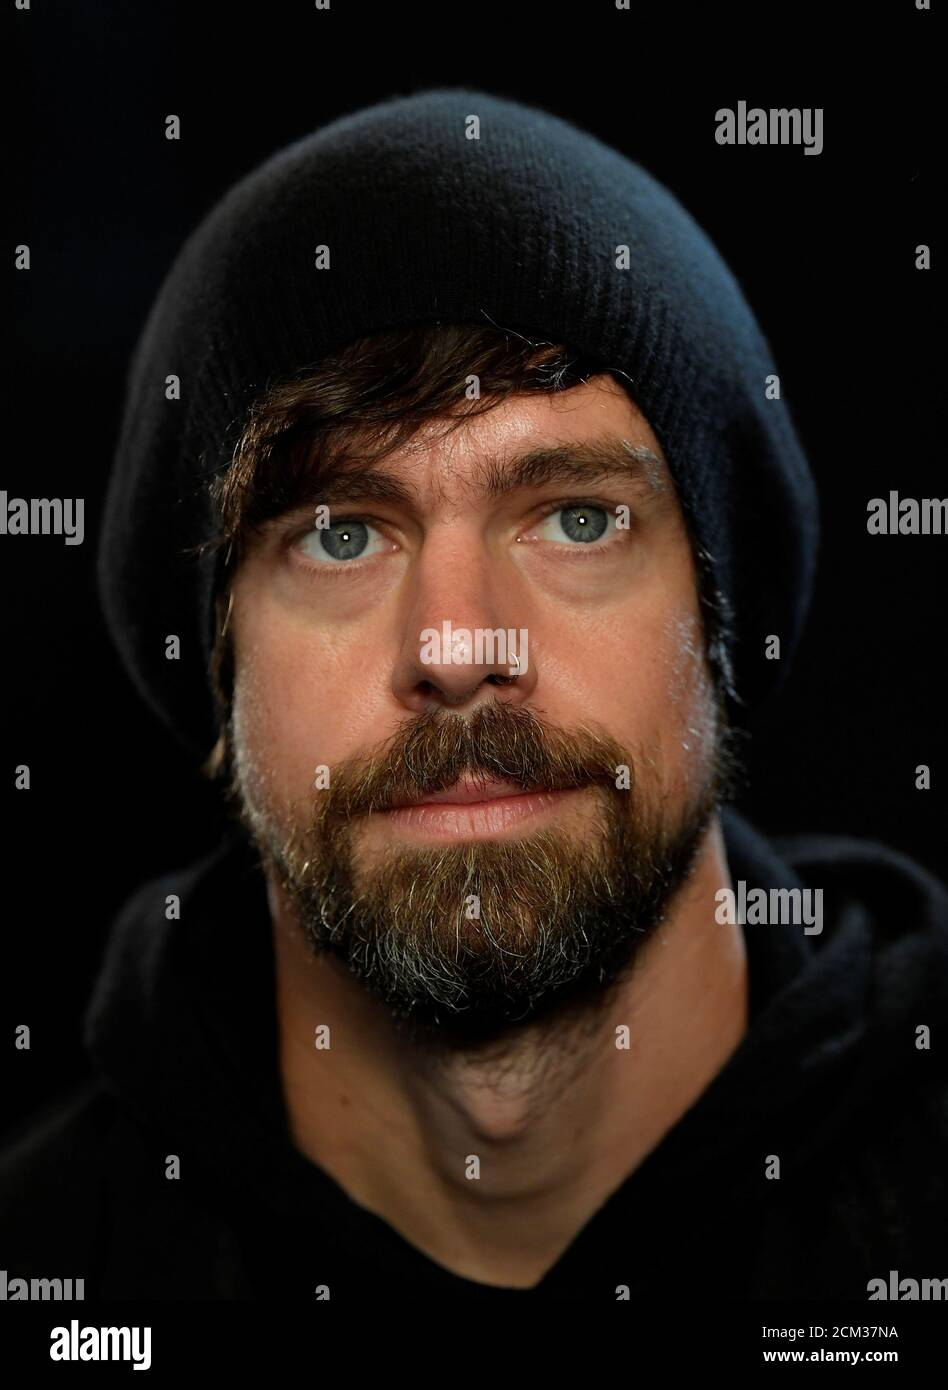 Jack Dorsey, co-founder of Twitter and fin-tech firm Square, sits for a portrait during an interview with Reuters in London, Britain, June 11, 2019. REUTERS/Toby Melville Stock Photo